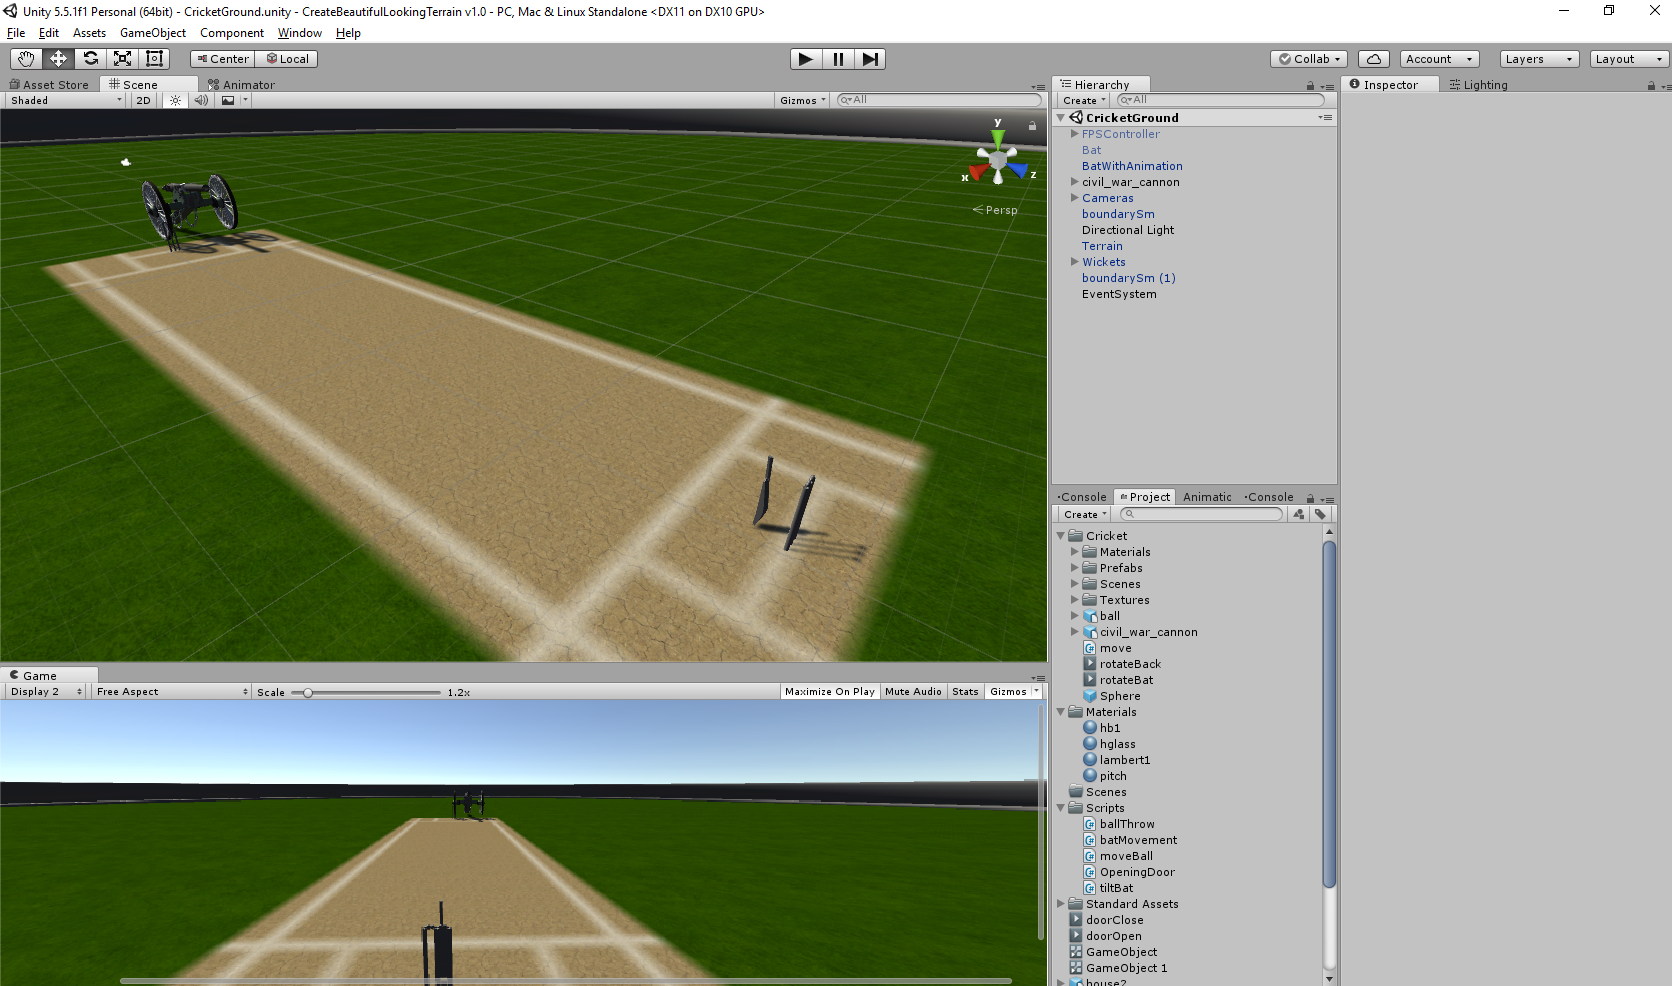 Demo Of Cricket Game